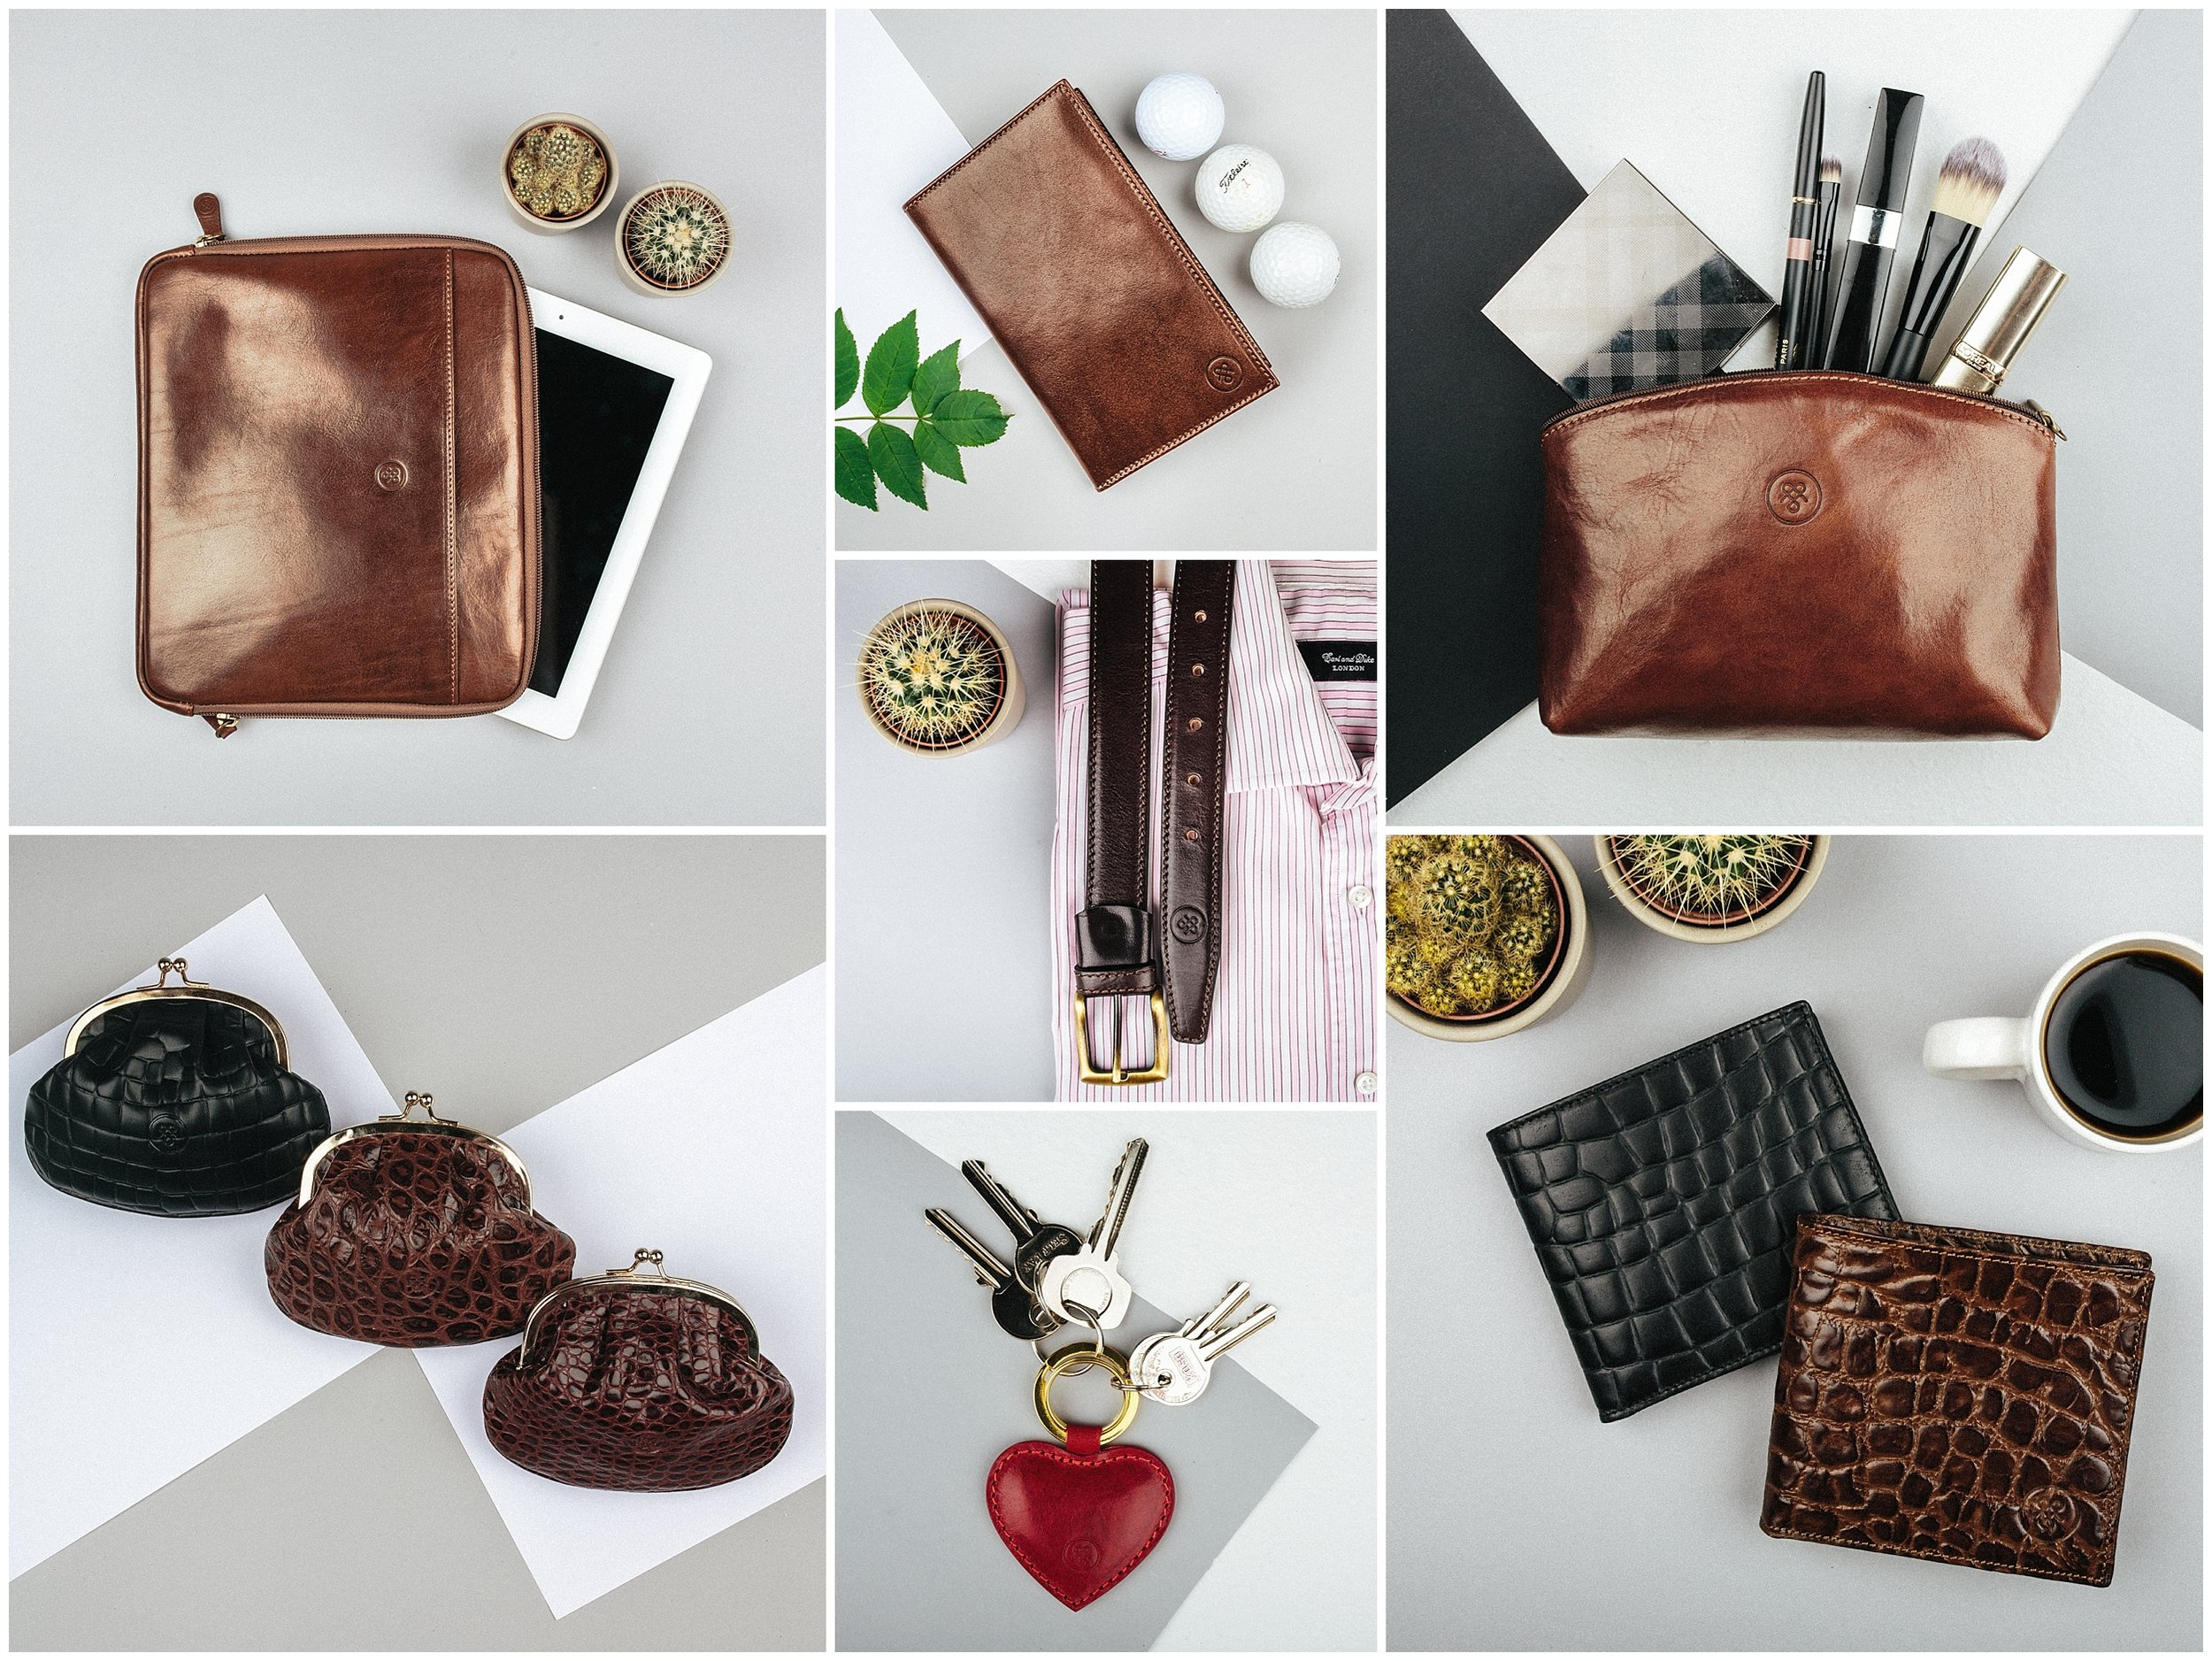 Product photography for Maxwell Scott